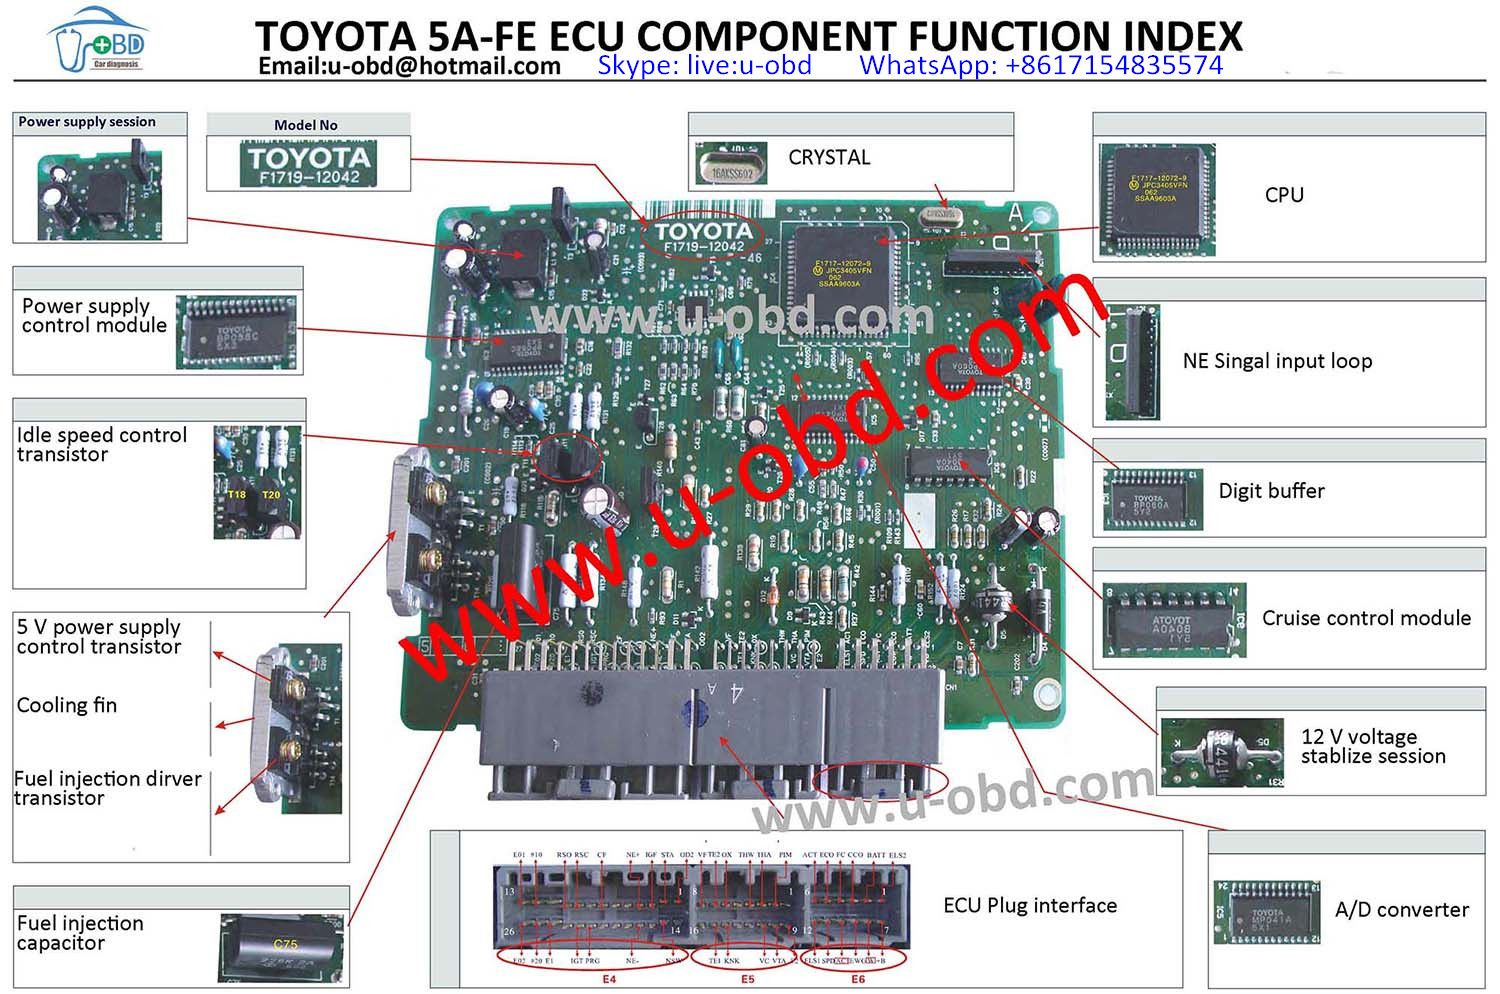 Toyota Classical Engine 5a Fe Was Commonly Used On Corolla Ex And Many Other Car Brand Here I Share The Ecu Components Functional Index Wh Car Ecu Ecu Toyota